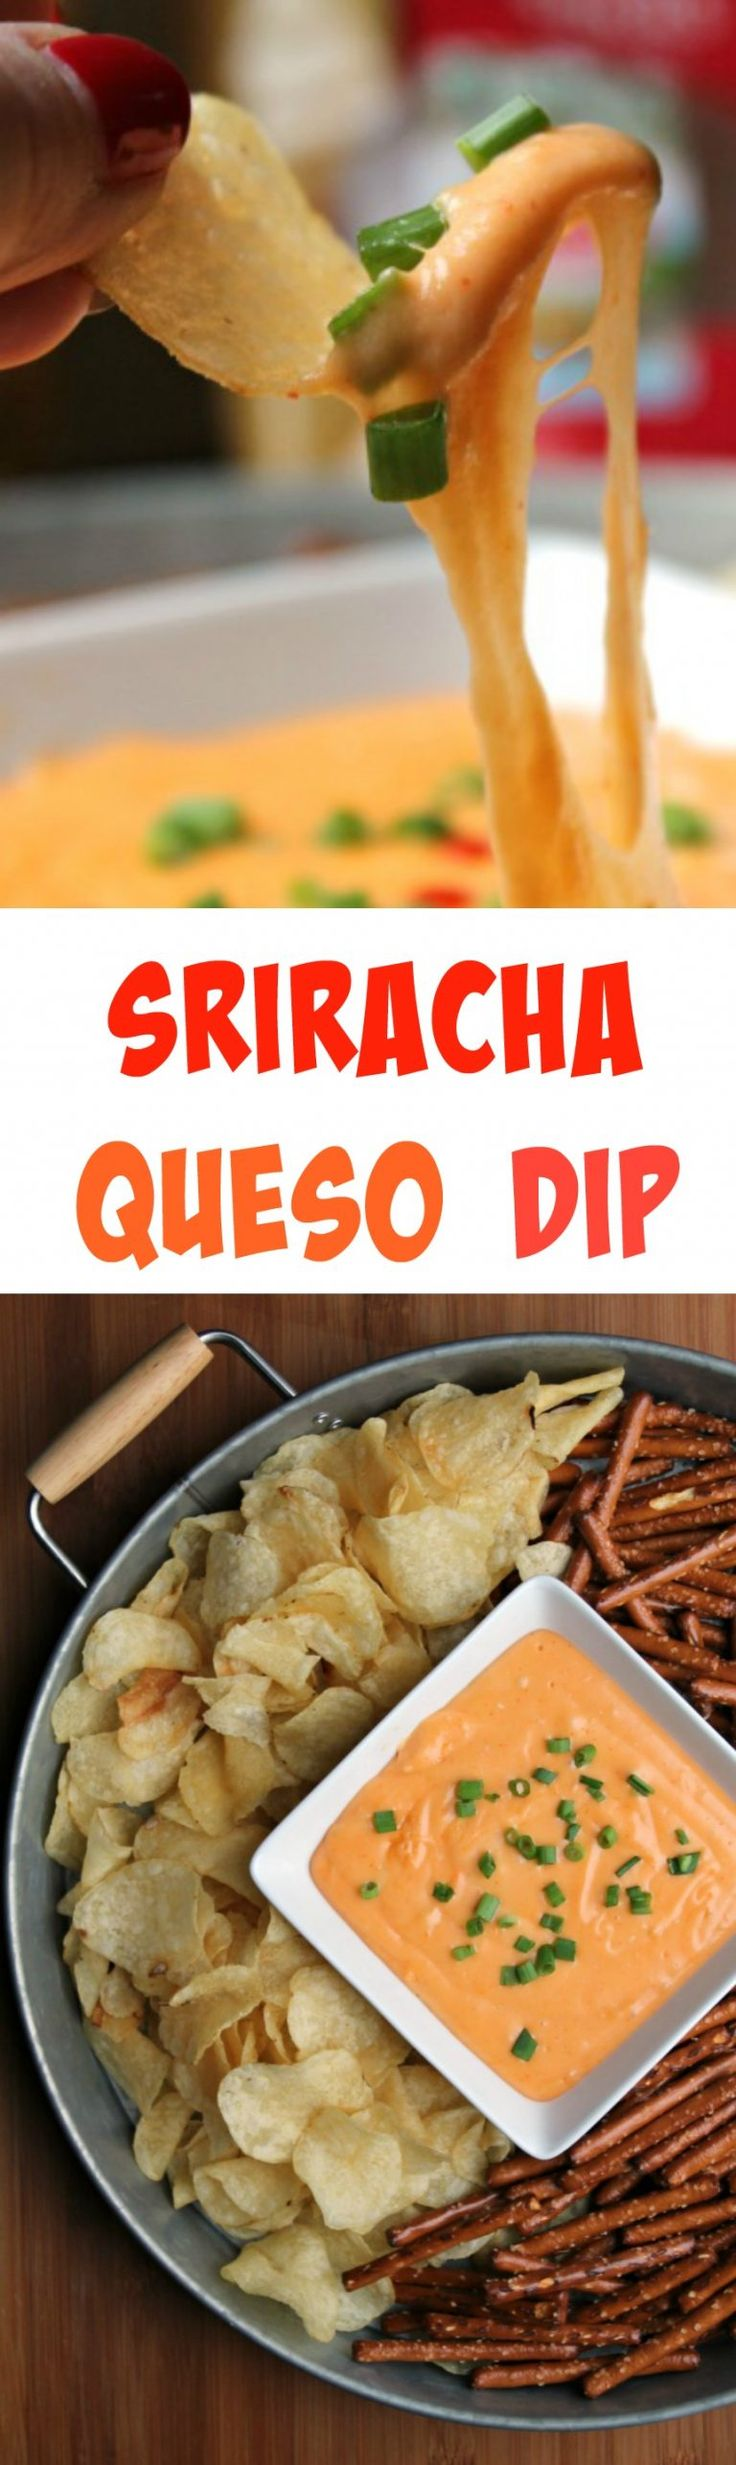 Sriracha Queso Dip  -  A flavor boost by way of Sriracha gives this easy queso recipe a whole new flavor!  Easy to make and always a crowd pleaser.  This is a great nibble for those Big Game Days!  #ad #TheNewFanFavorites @snydershanover @capecodchips